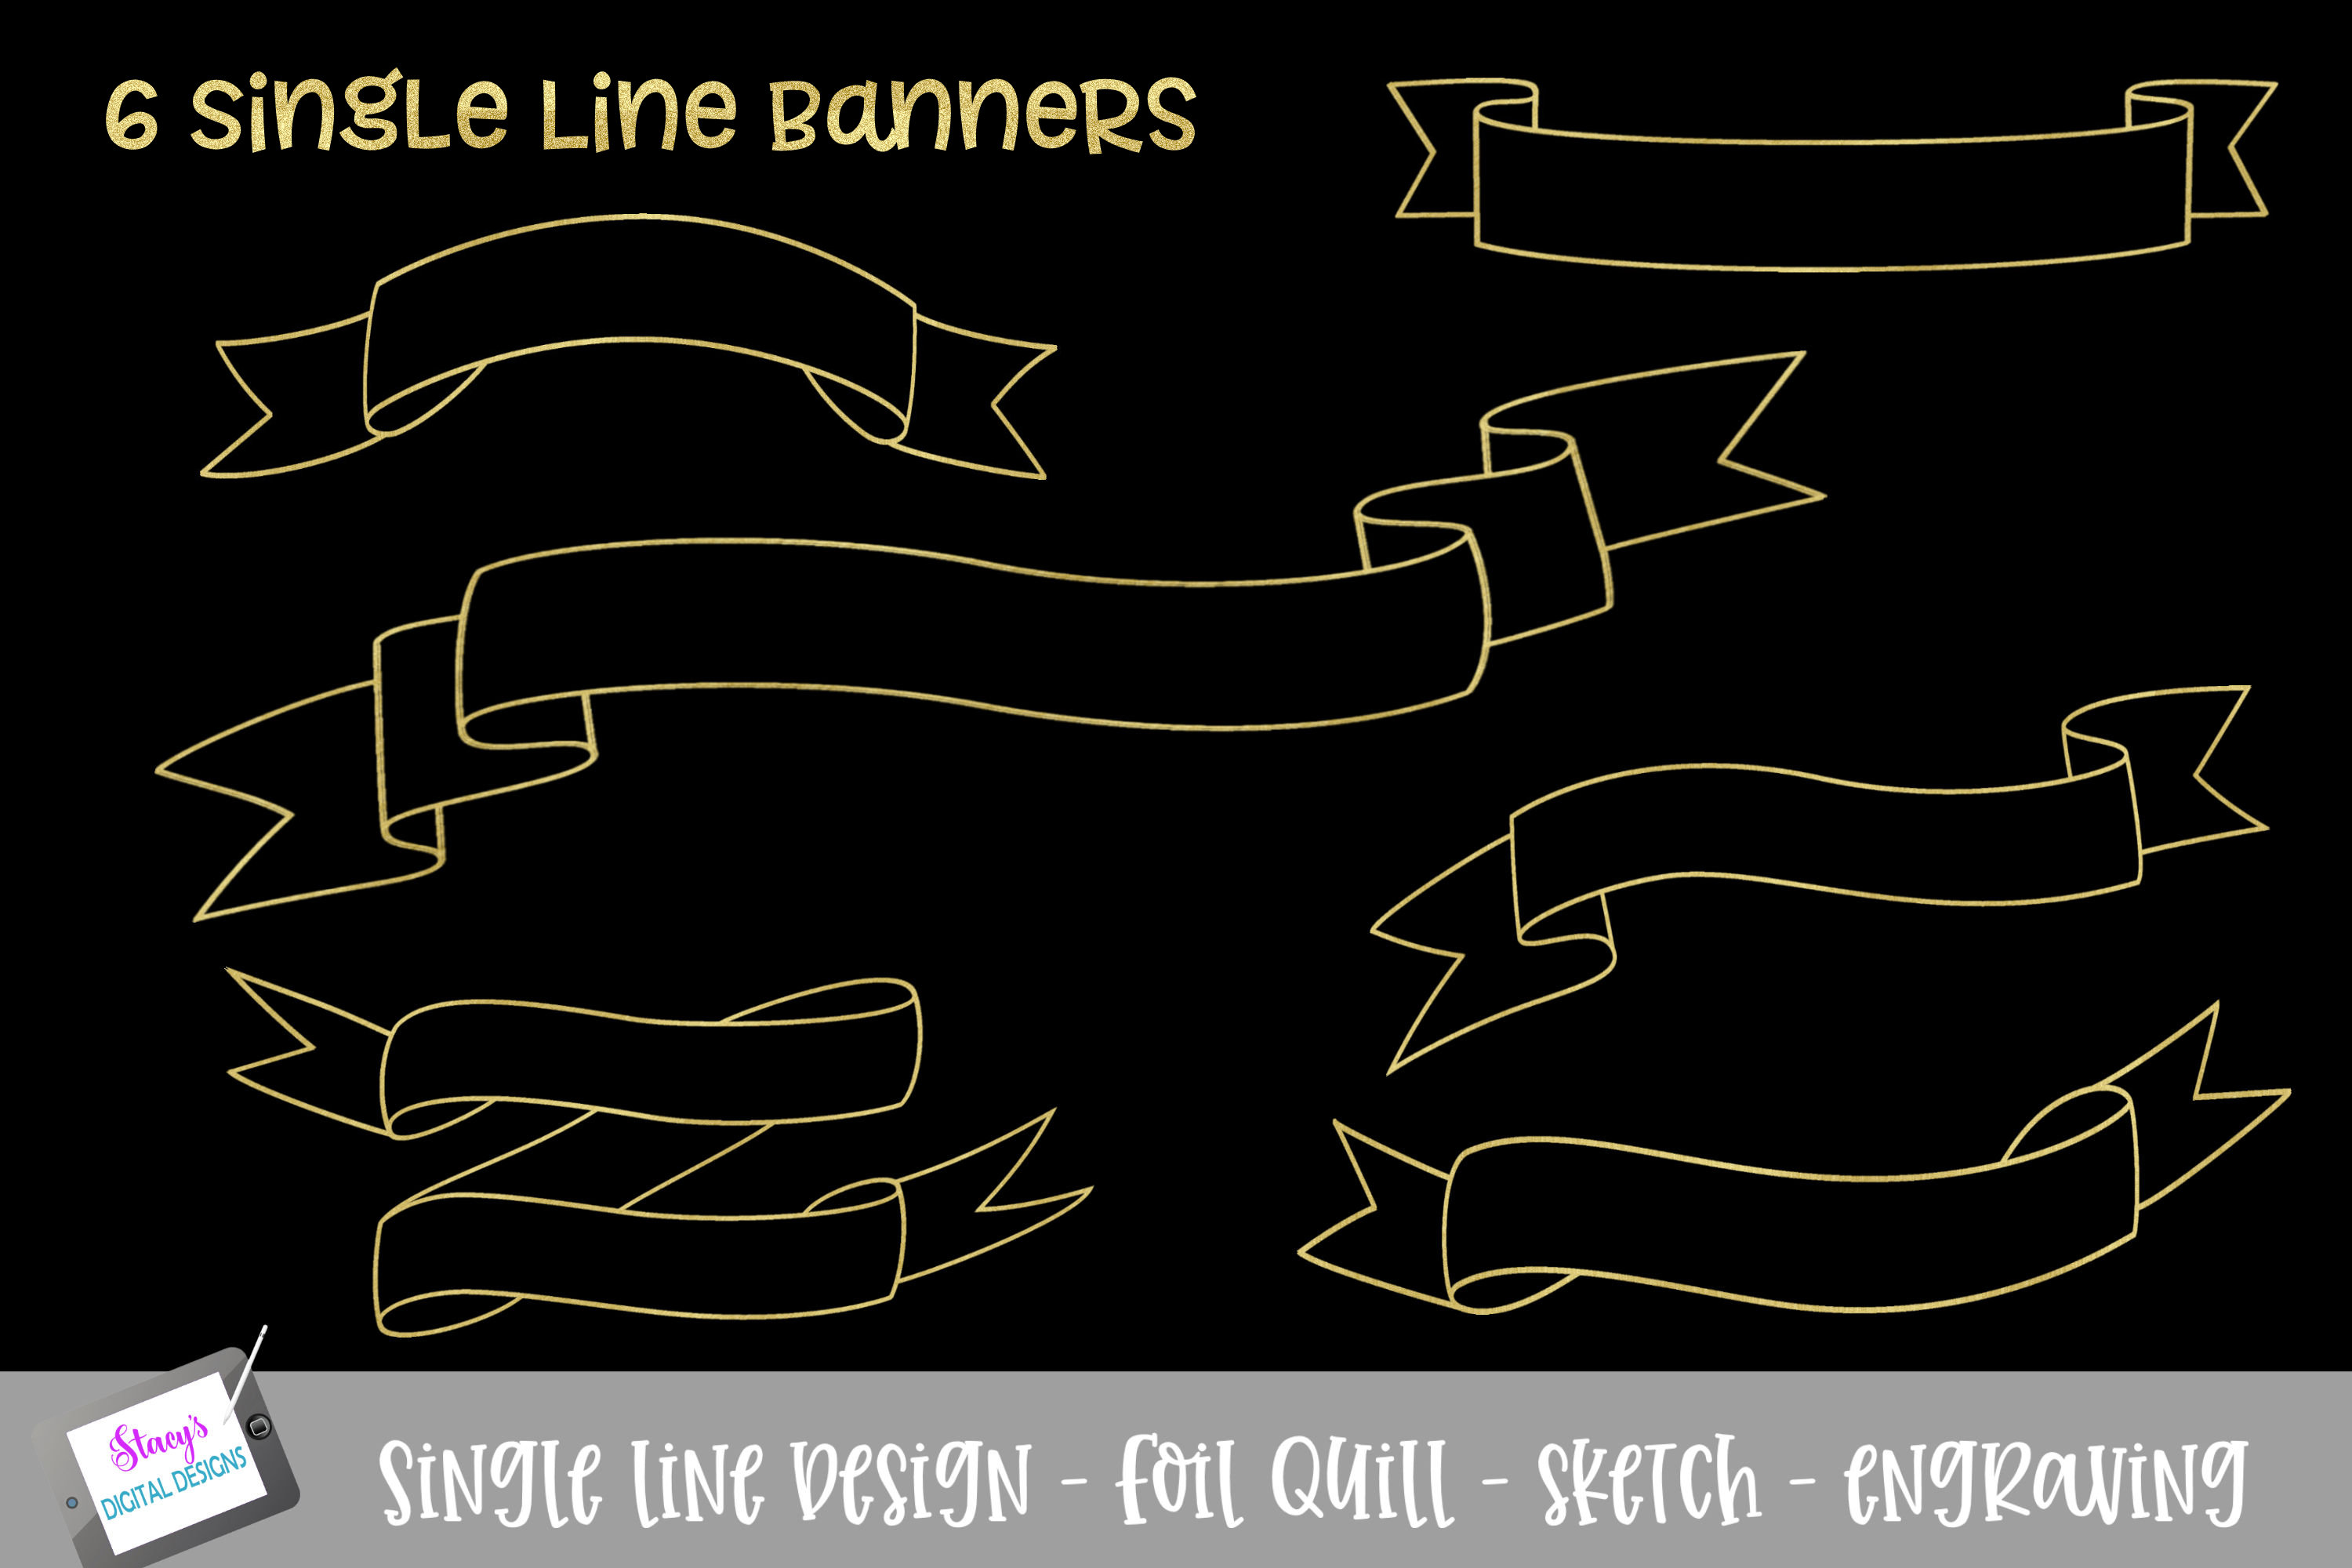 Foil Quill - Single Line Banner Bundle - 6 banners example image 1